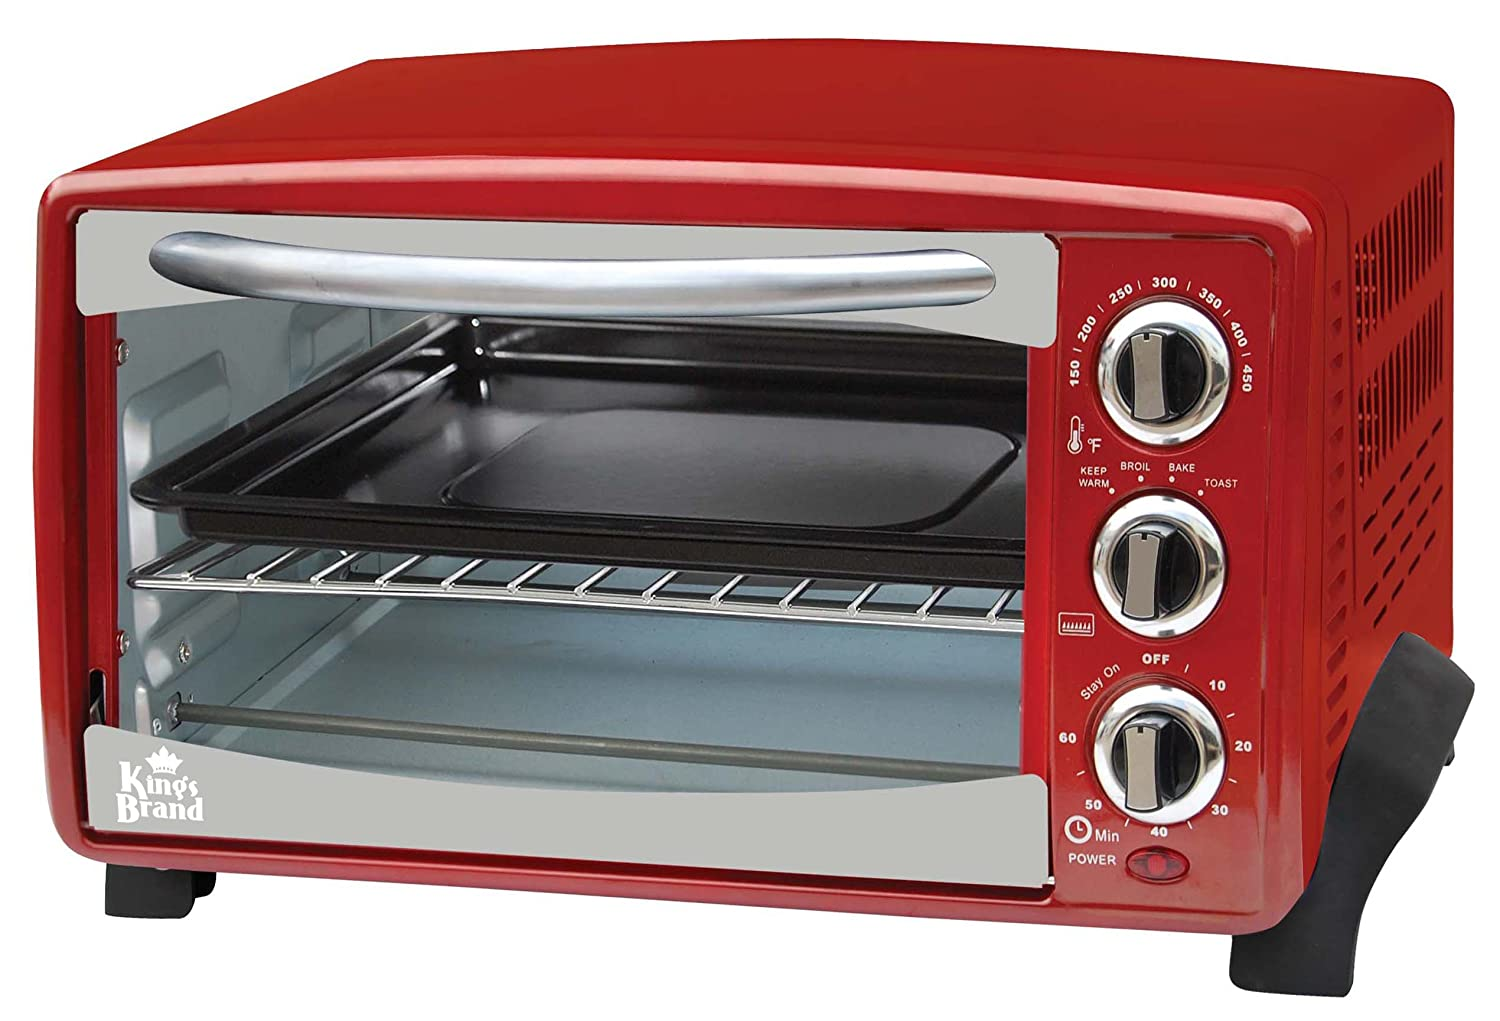 Kings Brand Red 6-Slice Toaster Oven